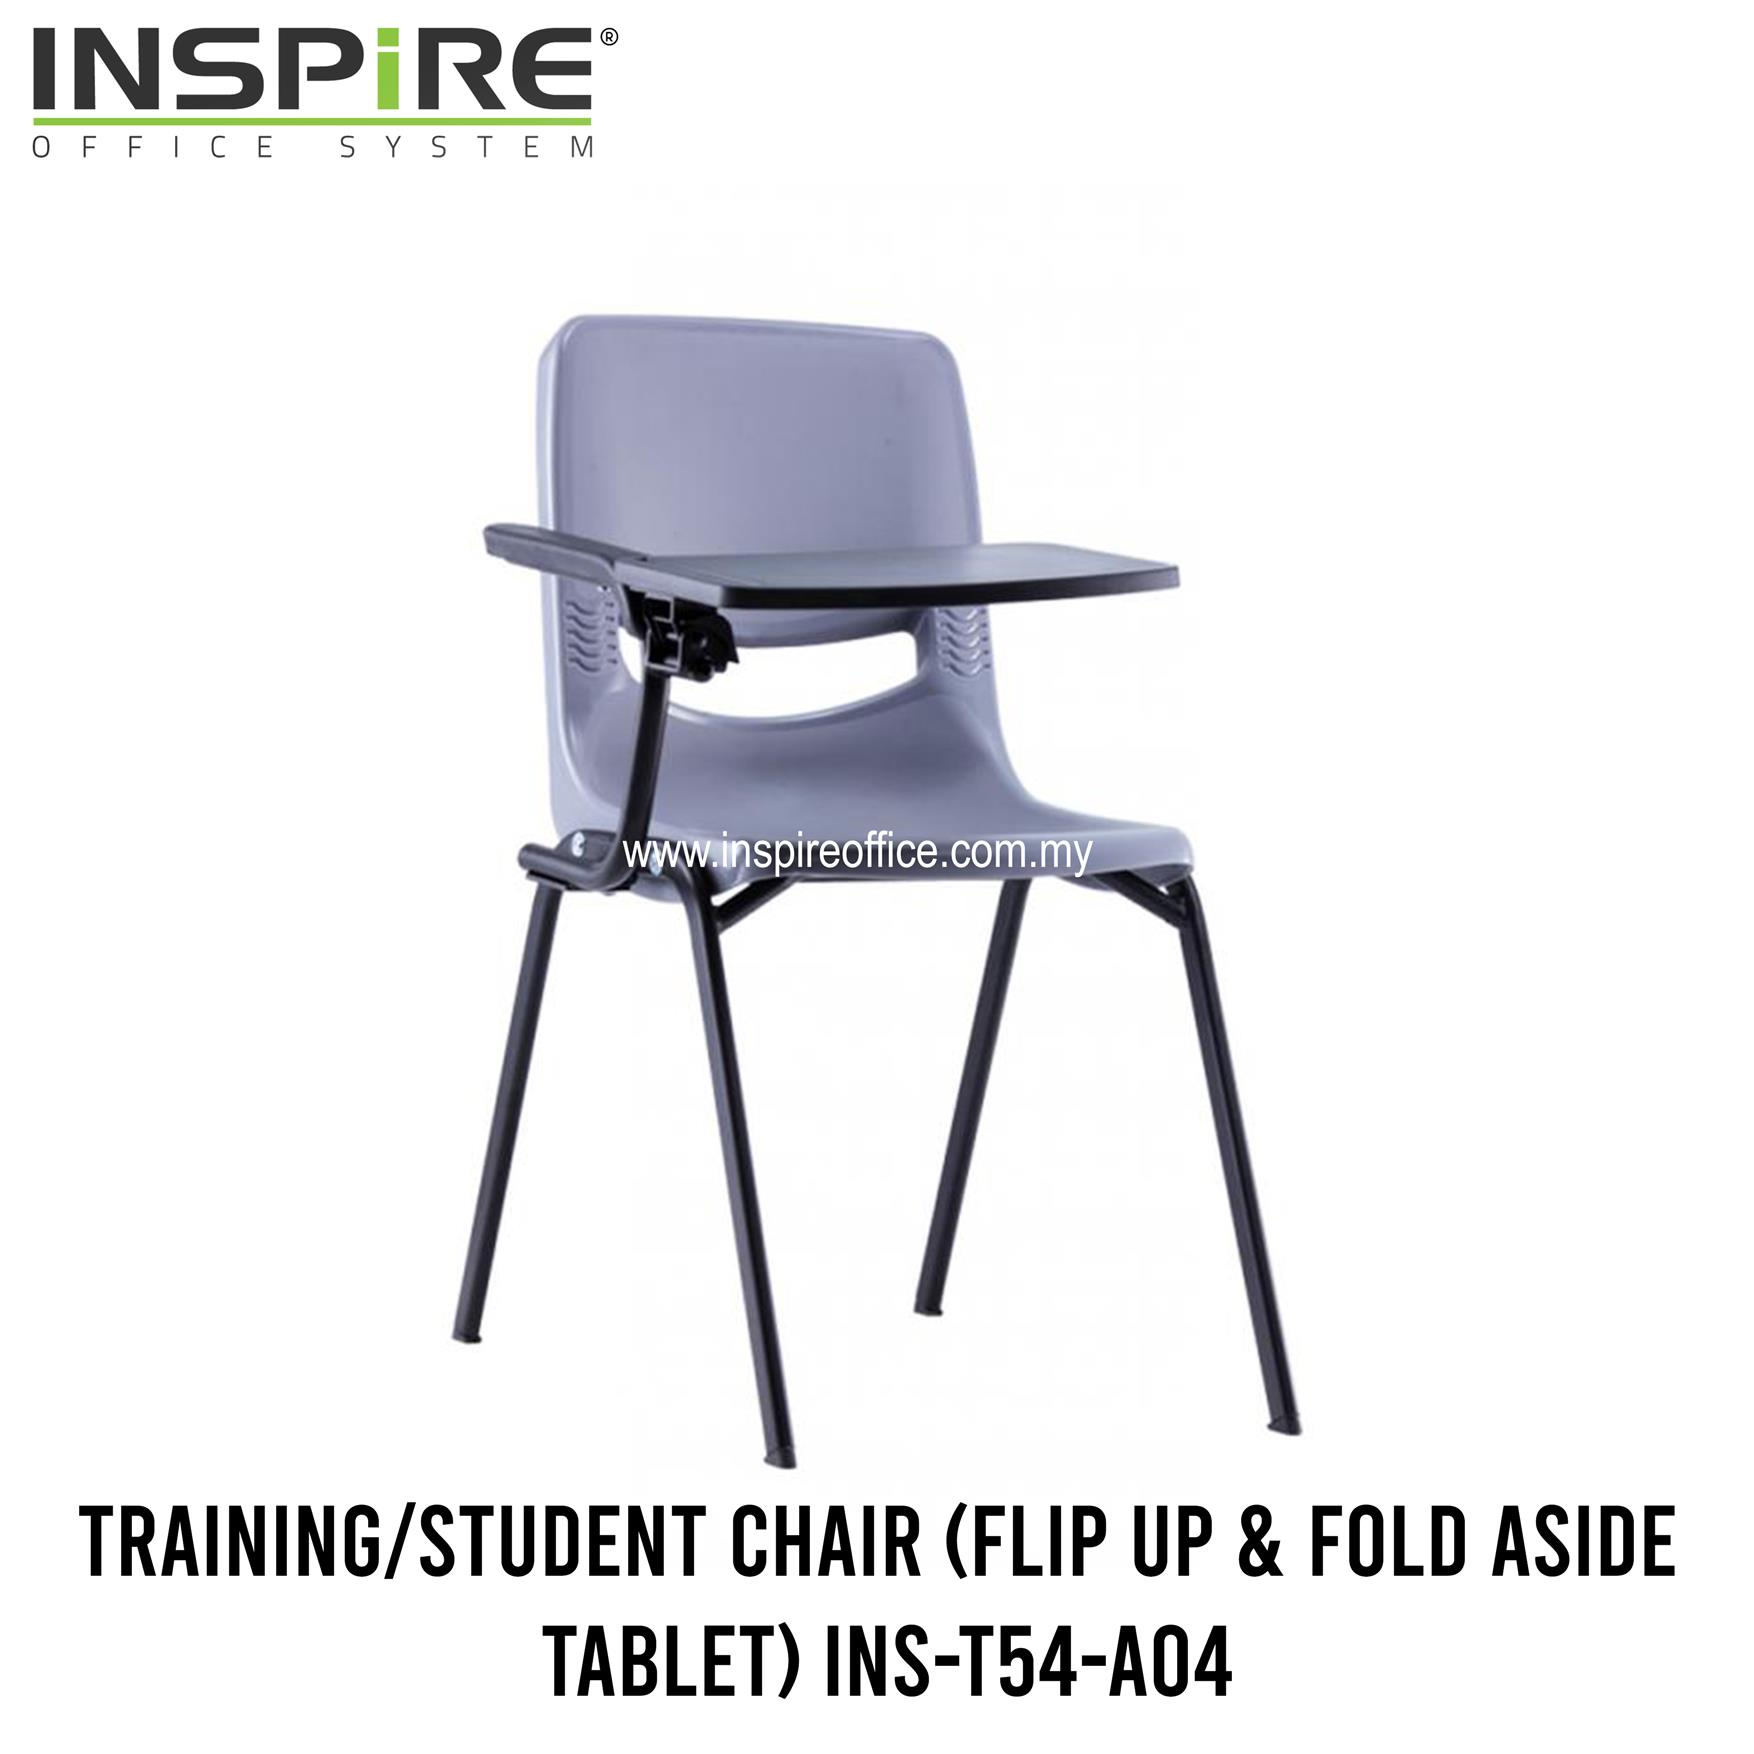 INS-T54-A04 Student Chair (Flip Up & Fold Aside Tablet)